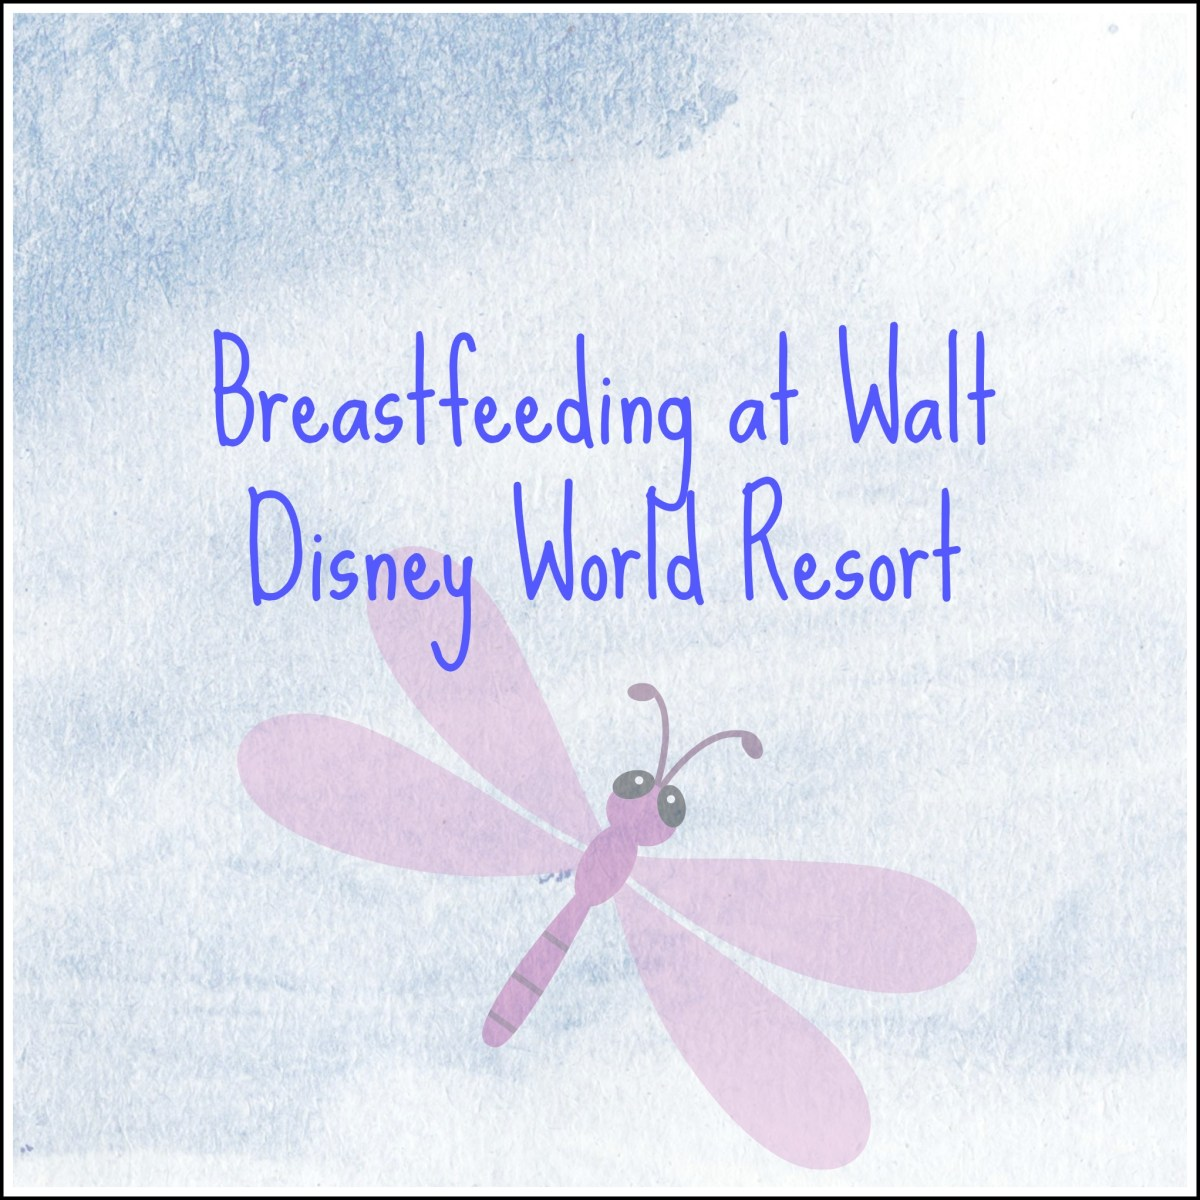 Breastfeeding at Walt Disney World Resort